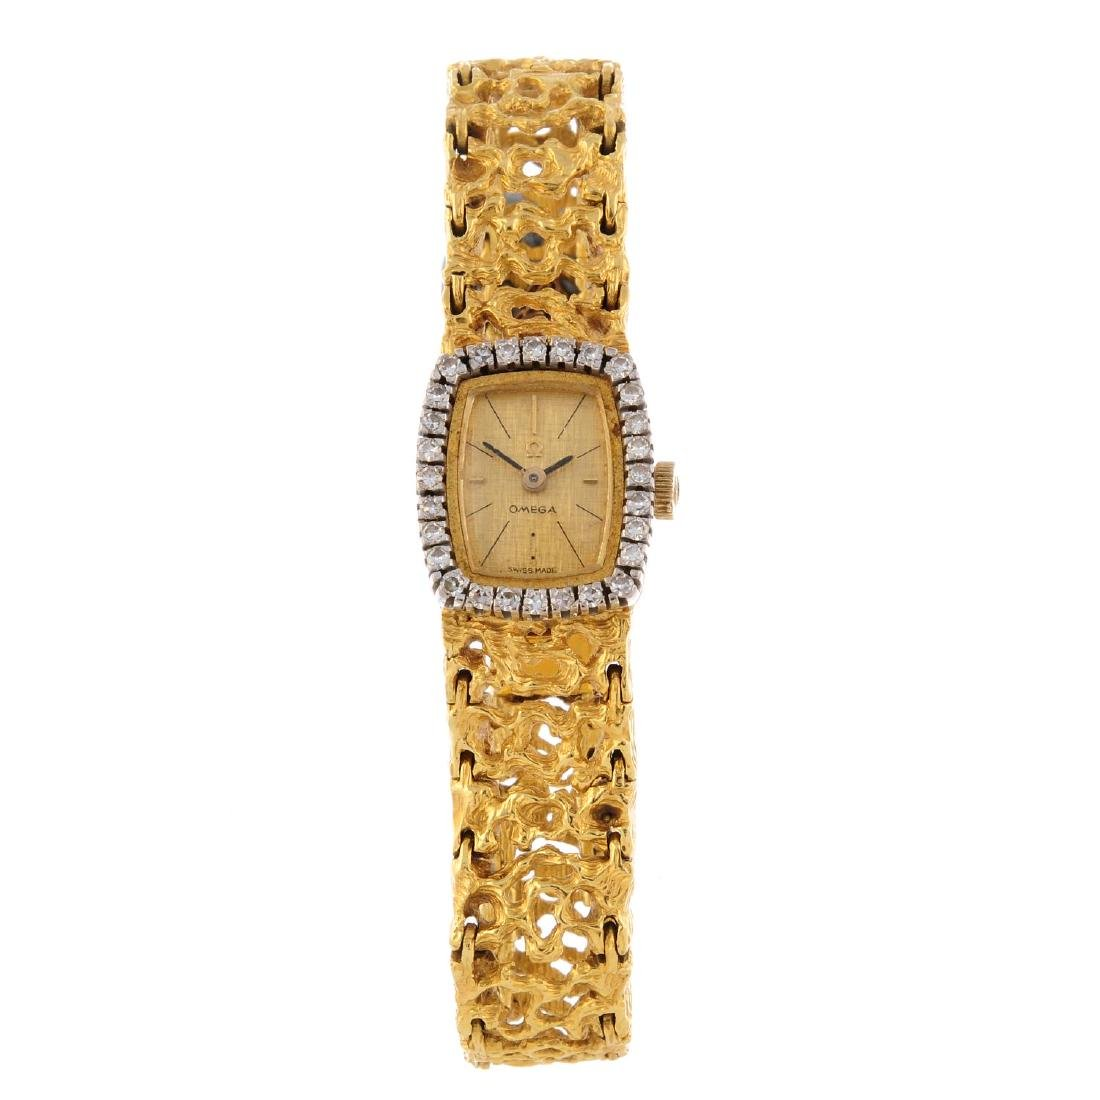 OMEGA - a lady's bracelet watch. Yellow metal case with